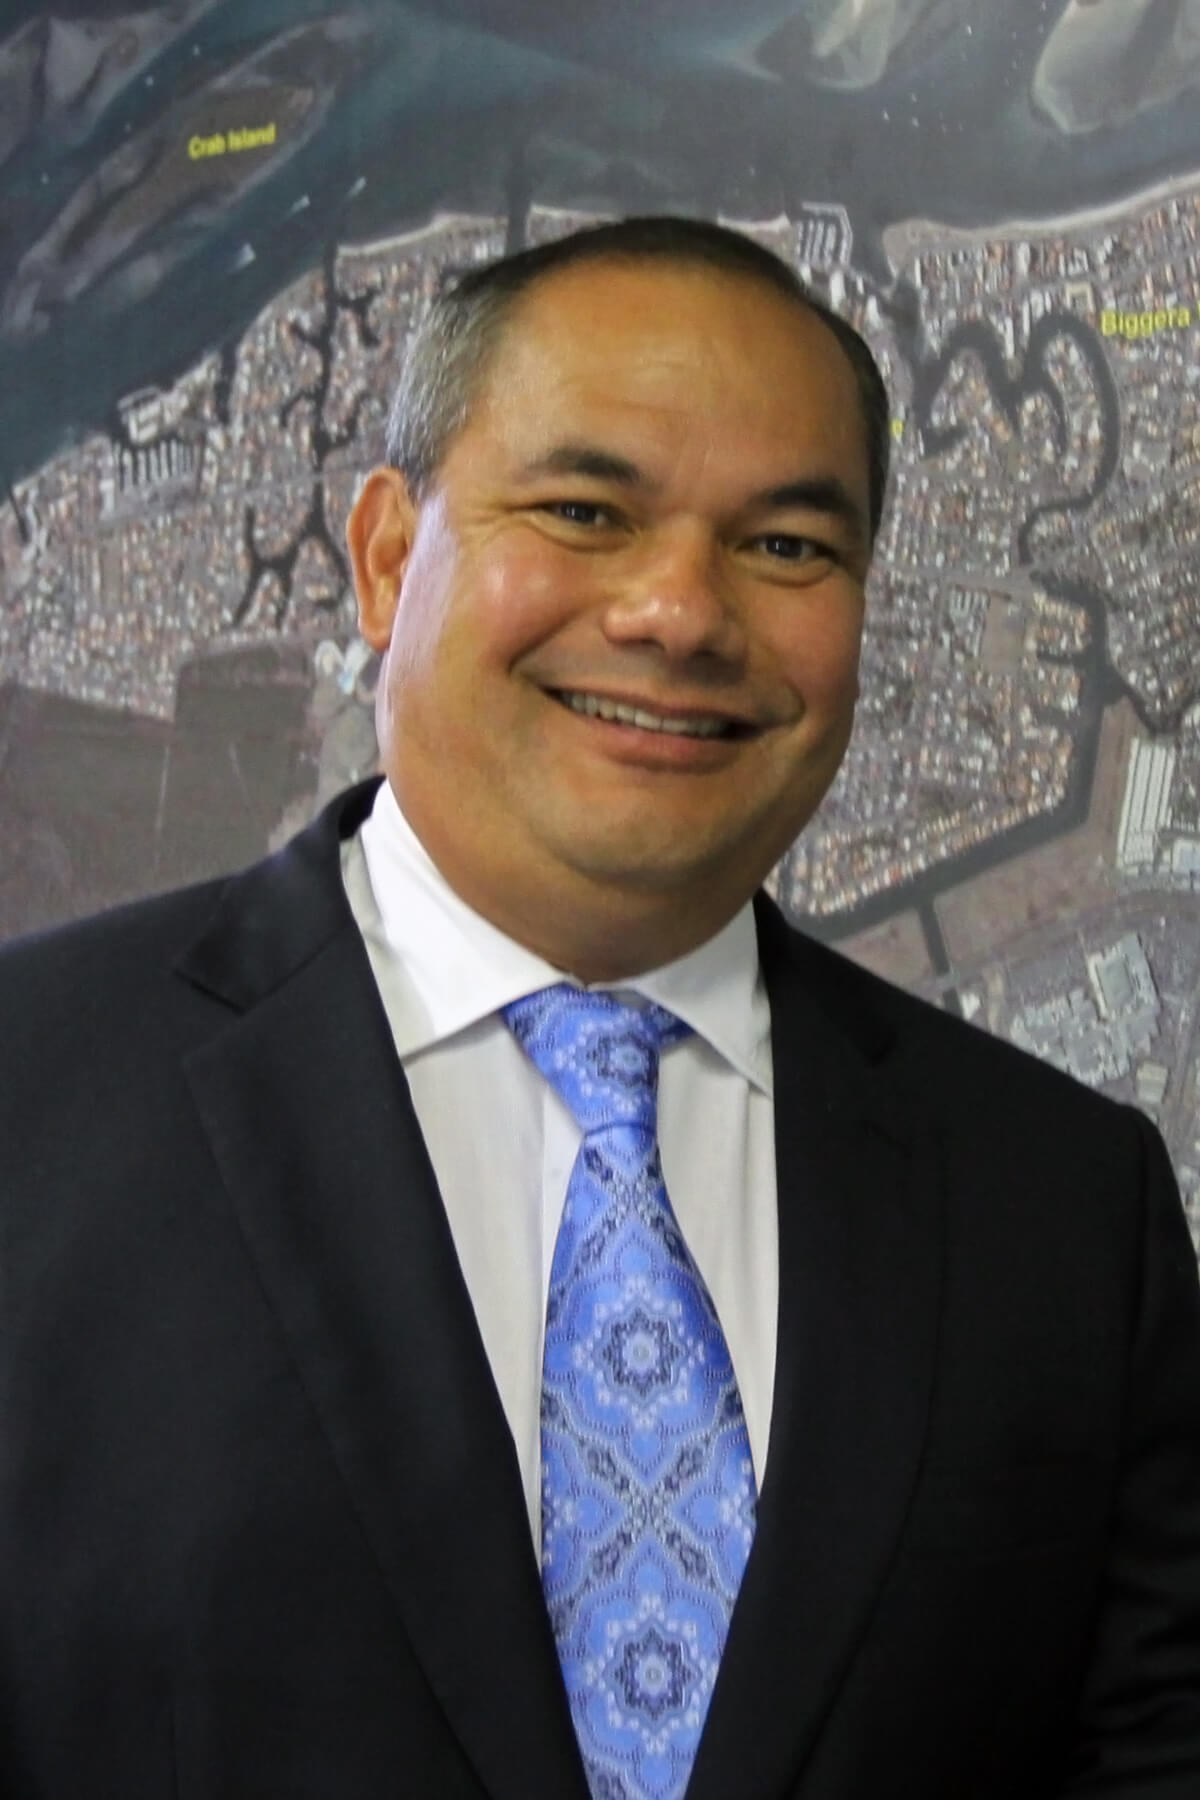 Mayor Tom Tate, City of Gold Coast